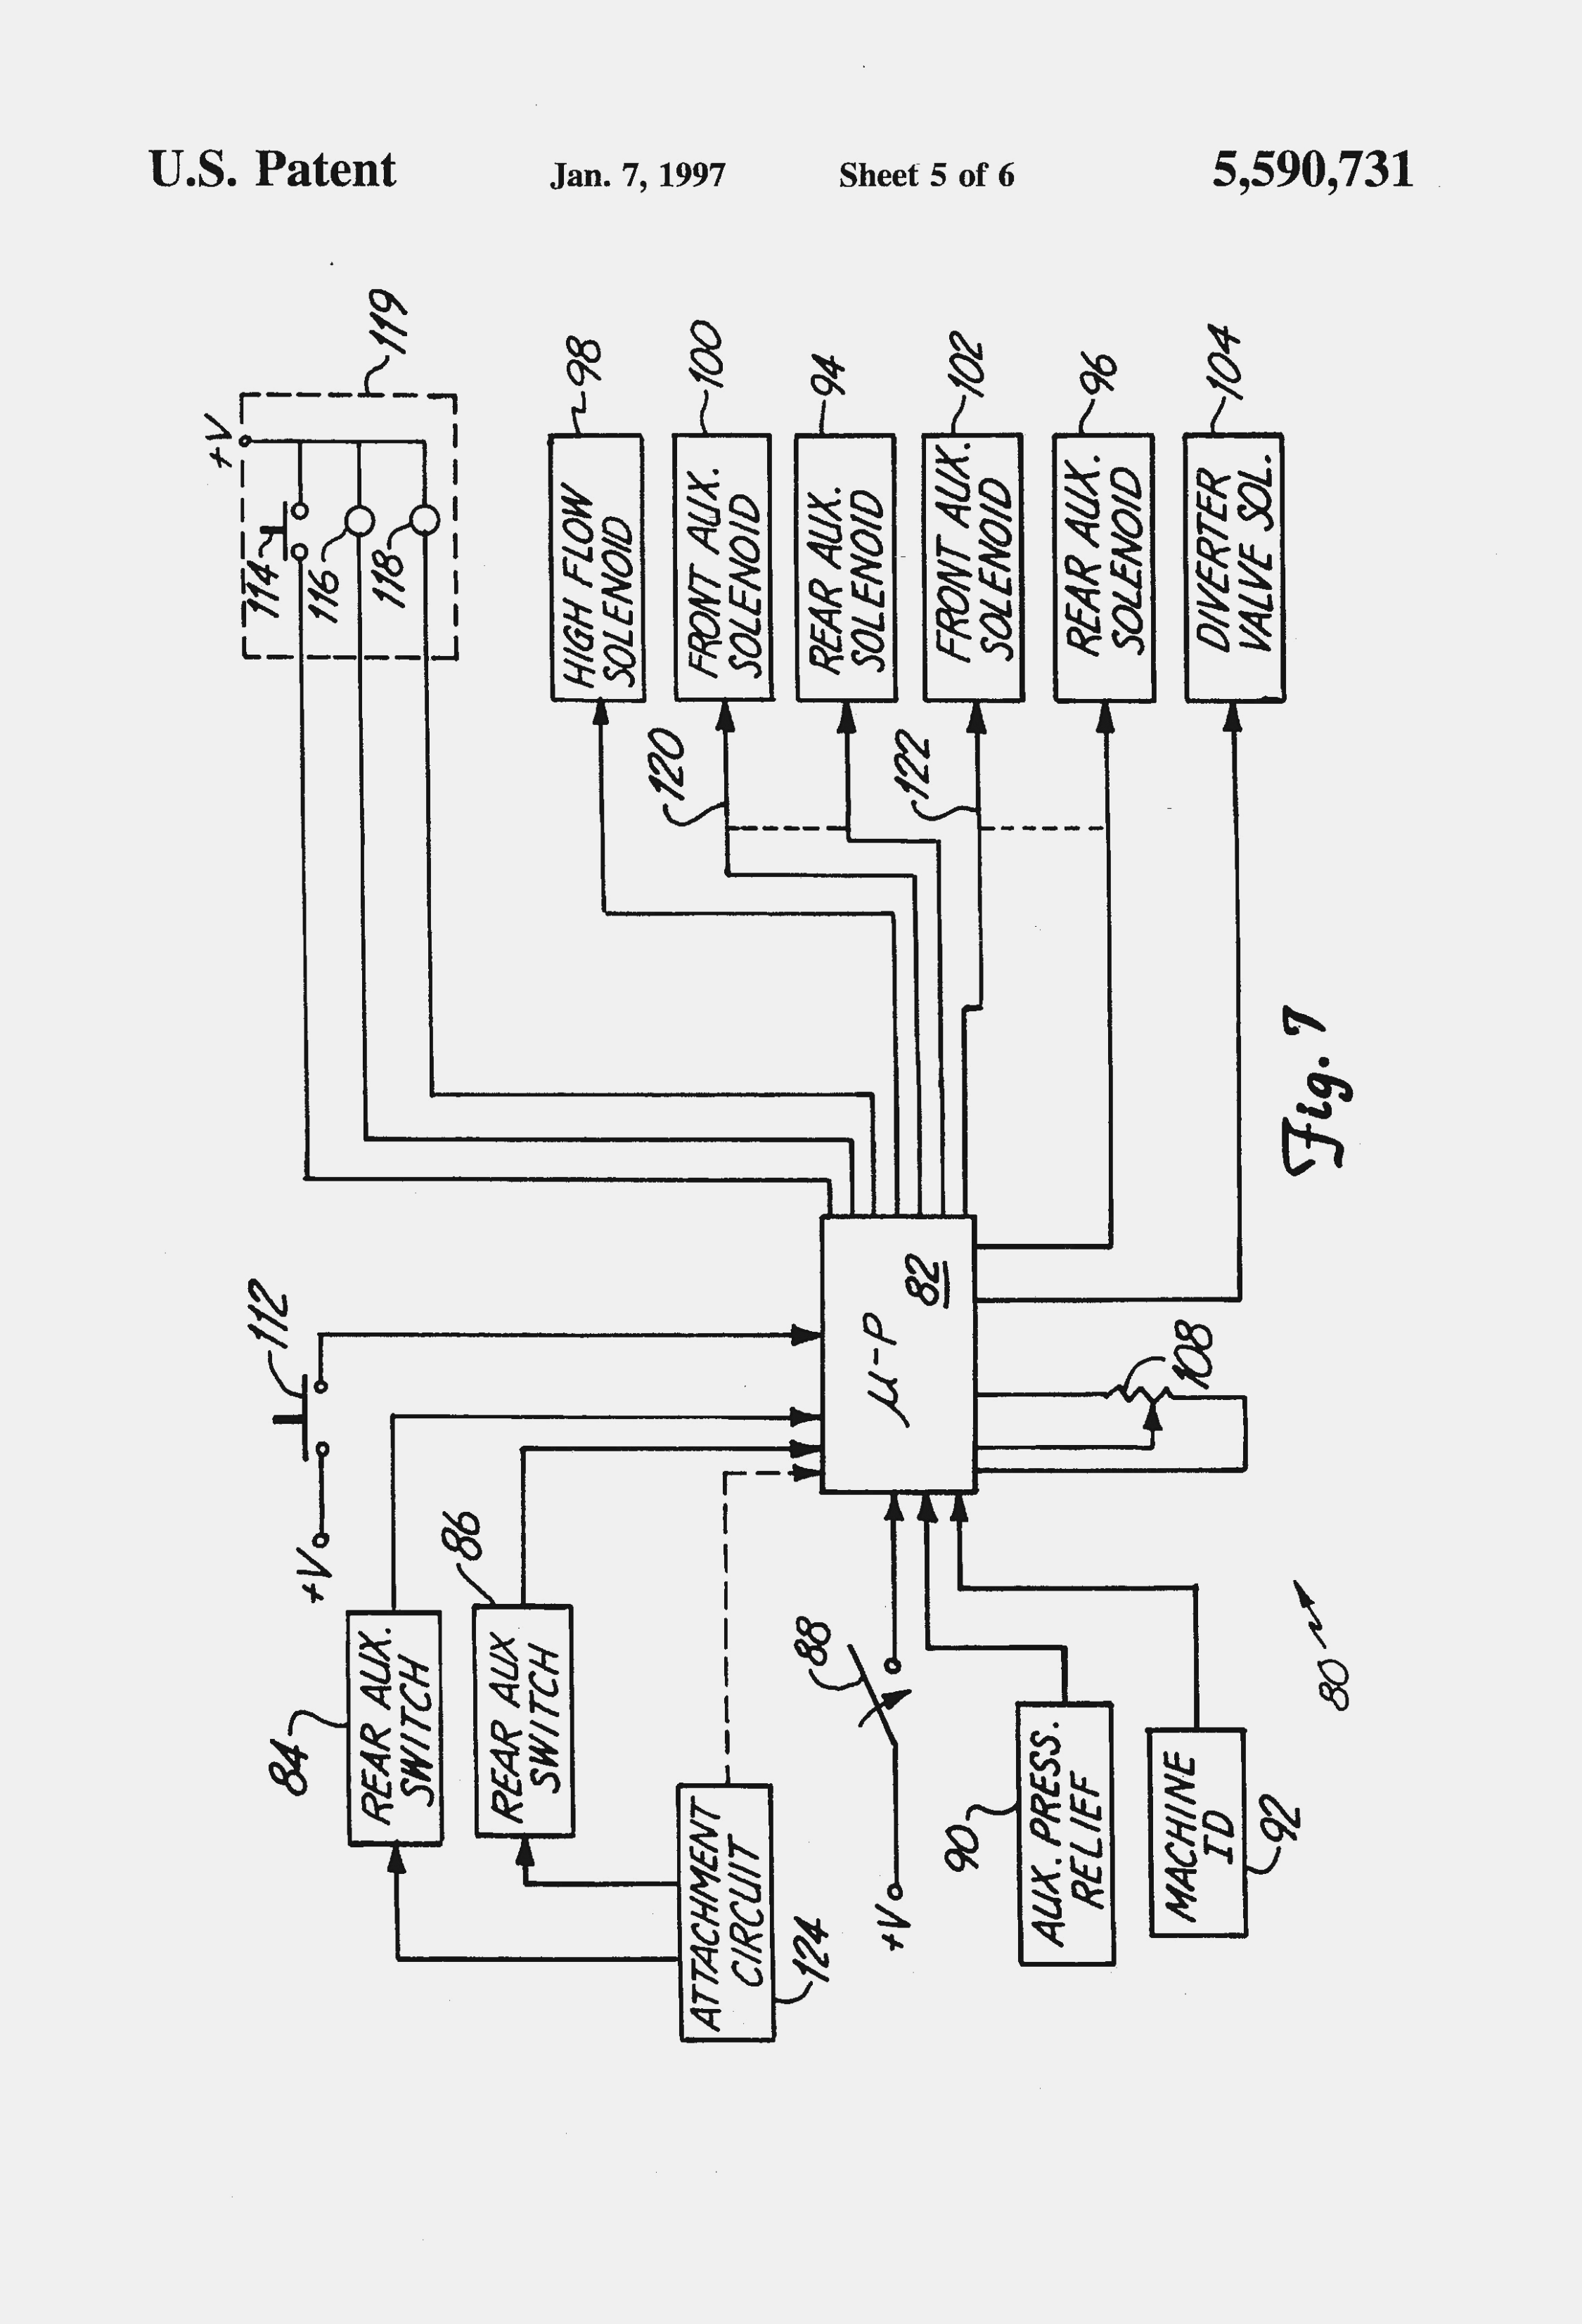 Wiring Diagram Of Washing Machine With Dryer  With Images